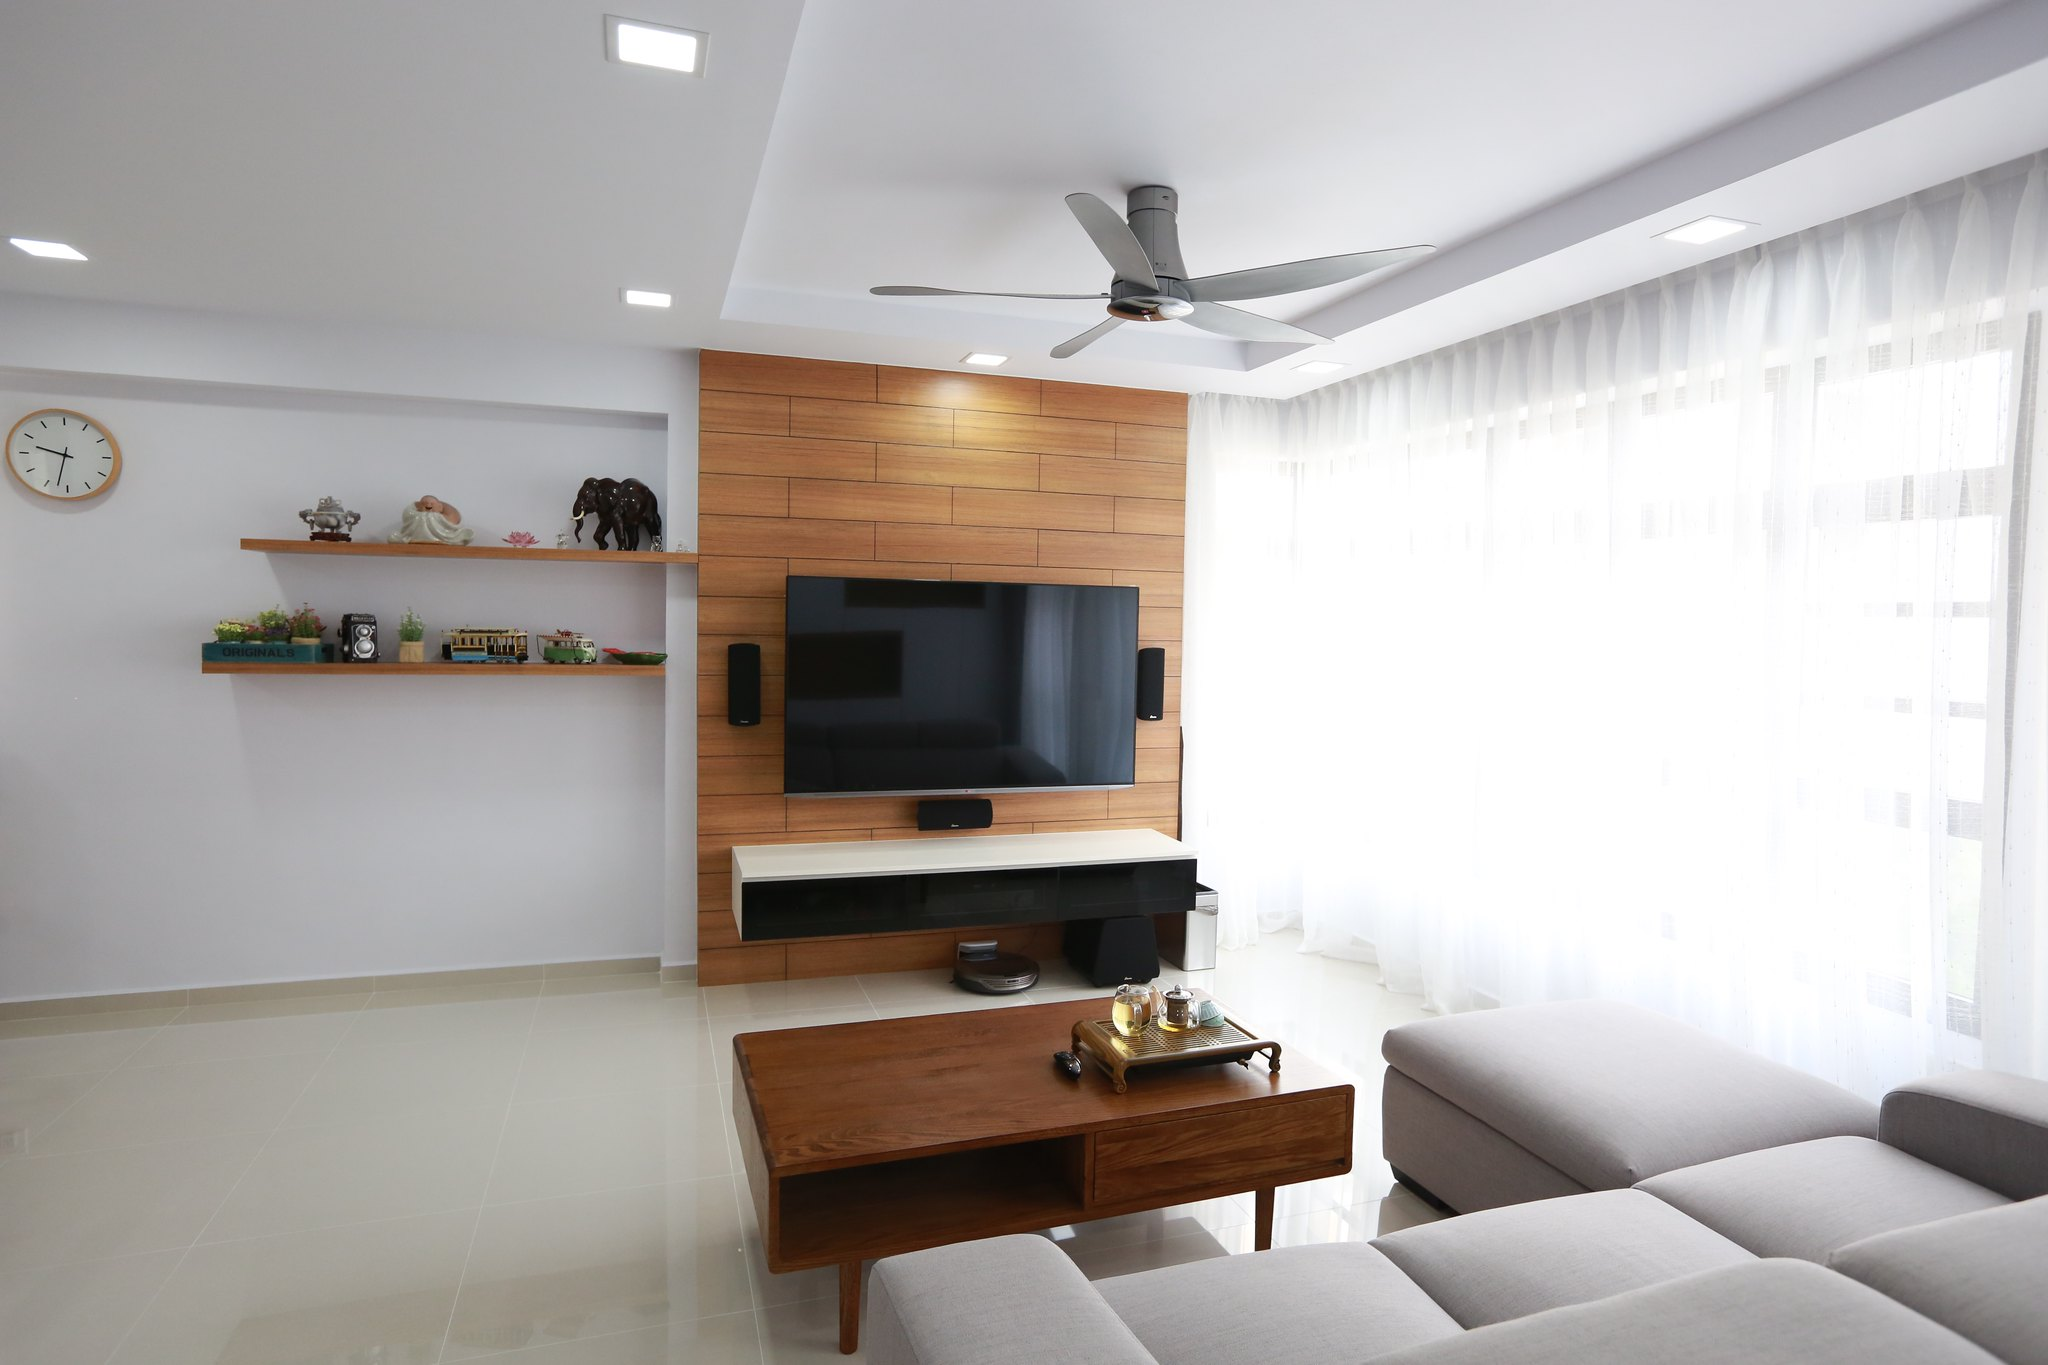 Tv For Sale Canberra Freb 39s 5 Room Renovation Journey Reno T Blog Chat Hdb